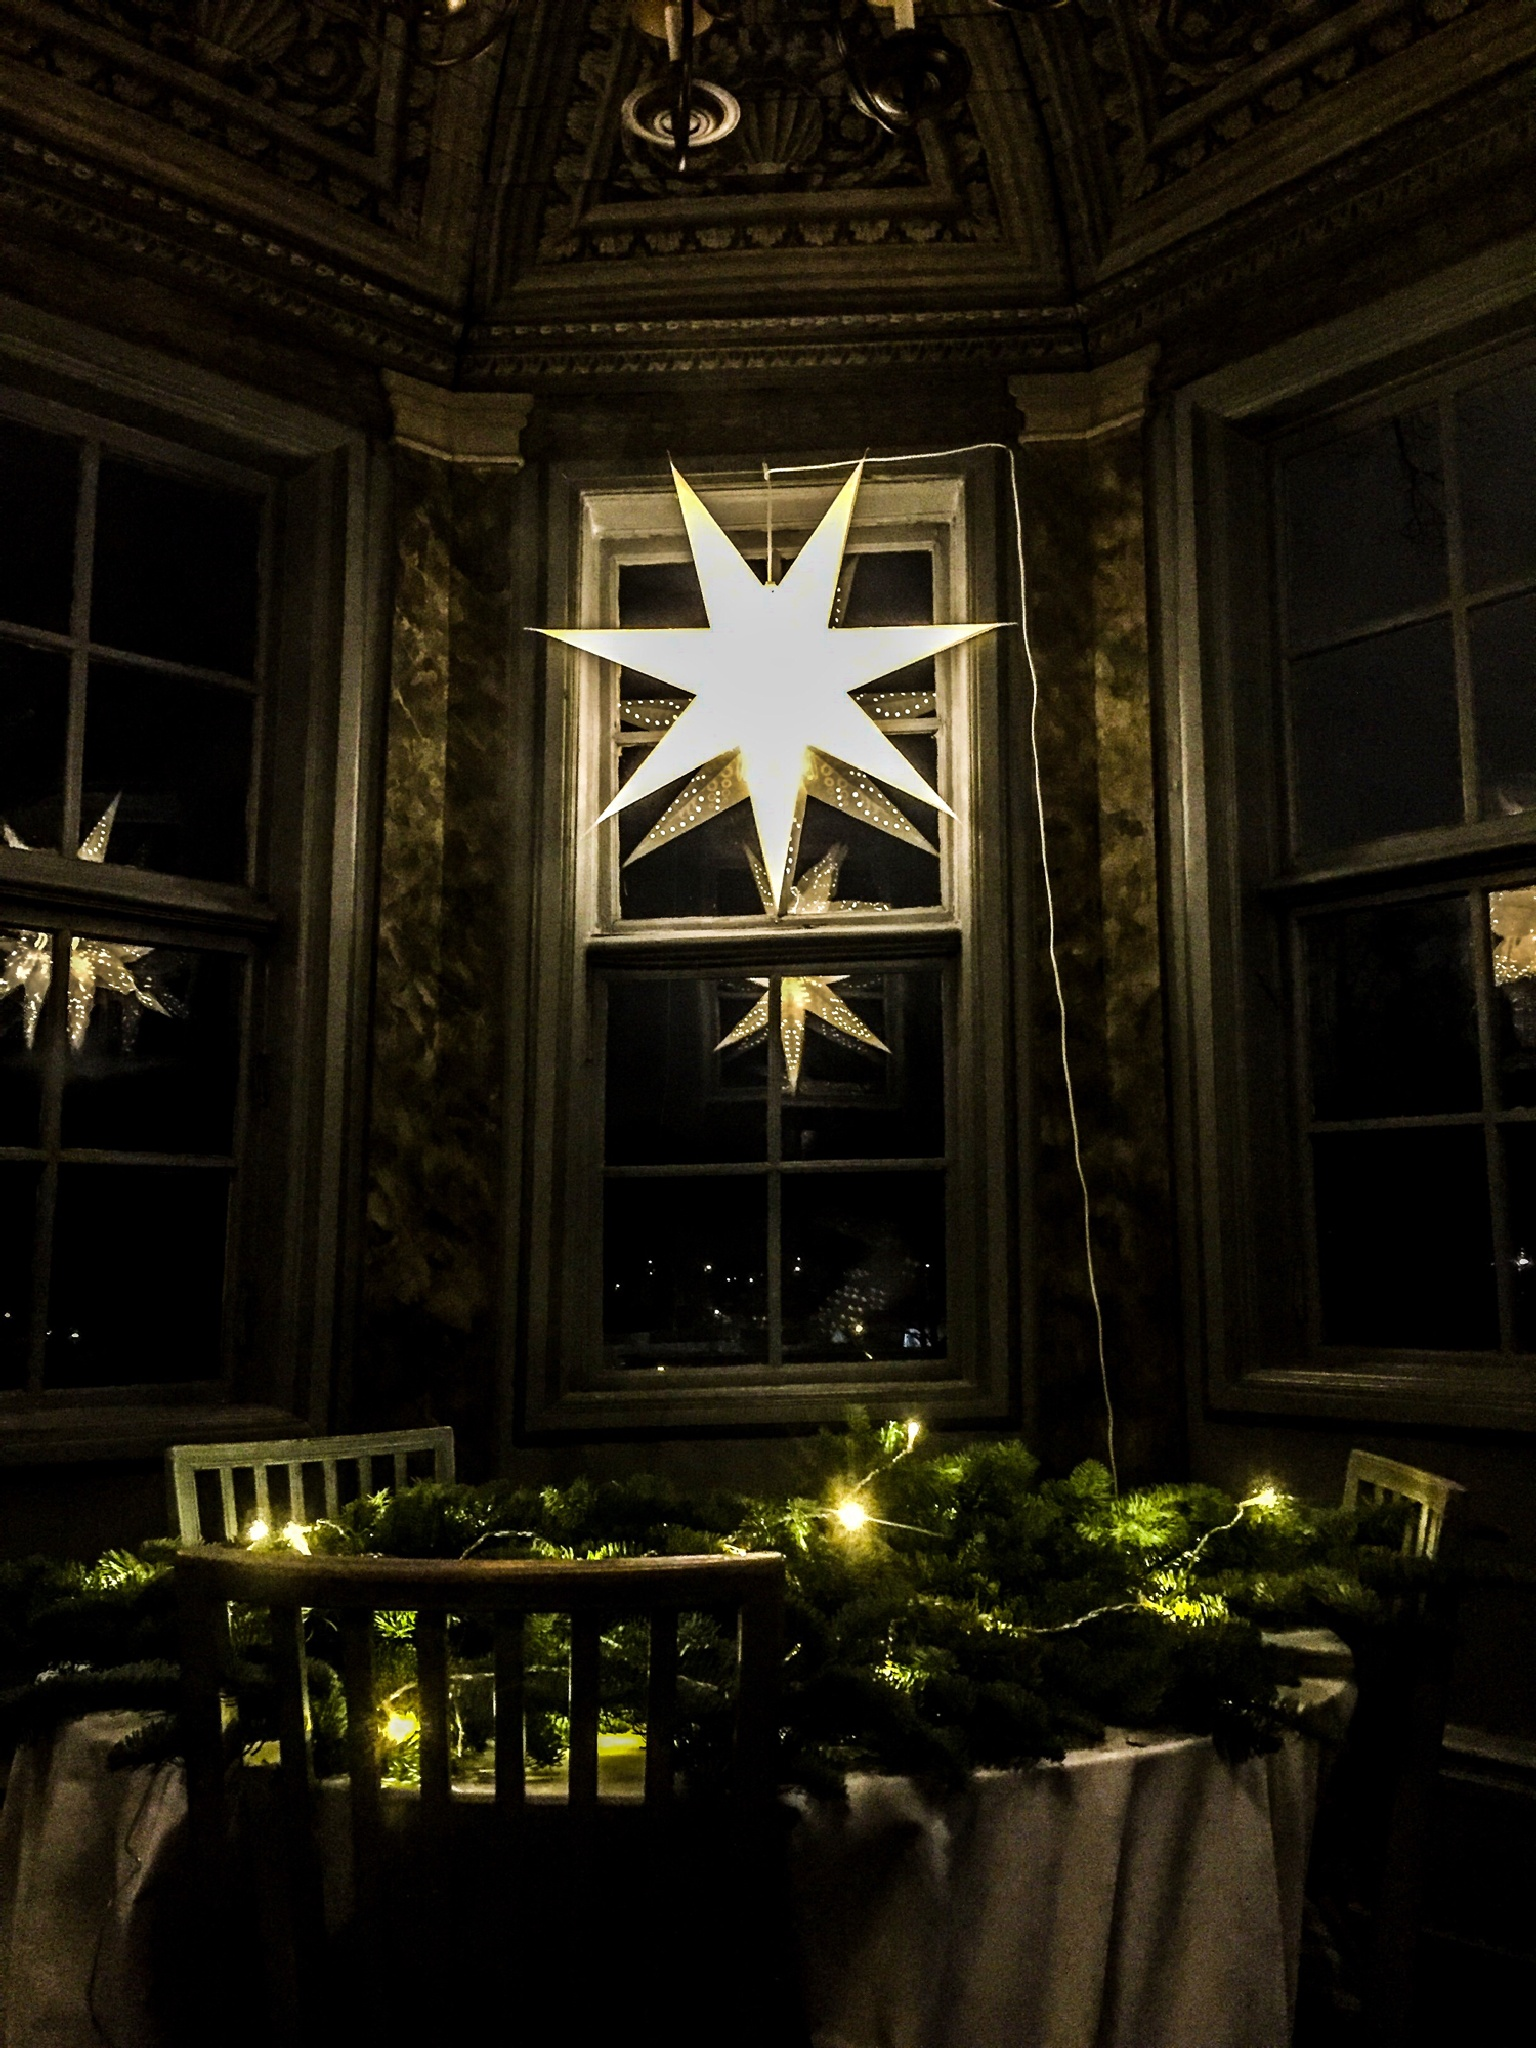 so wonderfully with a gazebo carrying the Christmas spirit by Patric Lundh